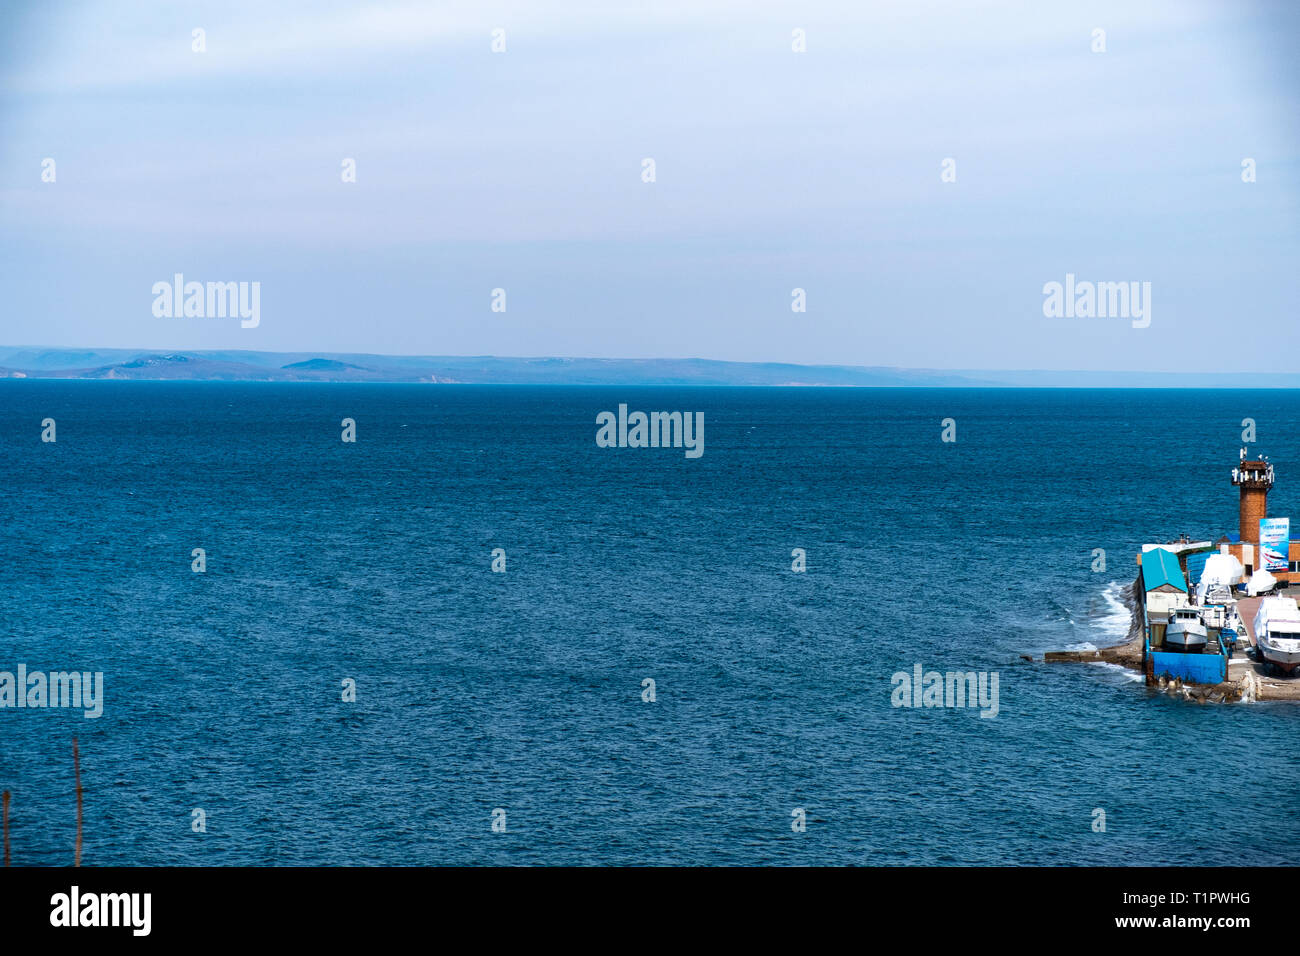 View of the sea and the city of Vladivostok from the observation deck - Stock Image